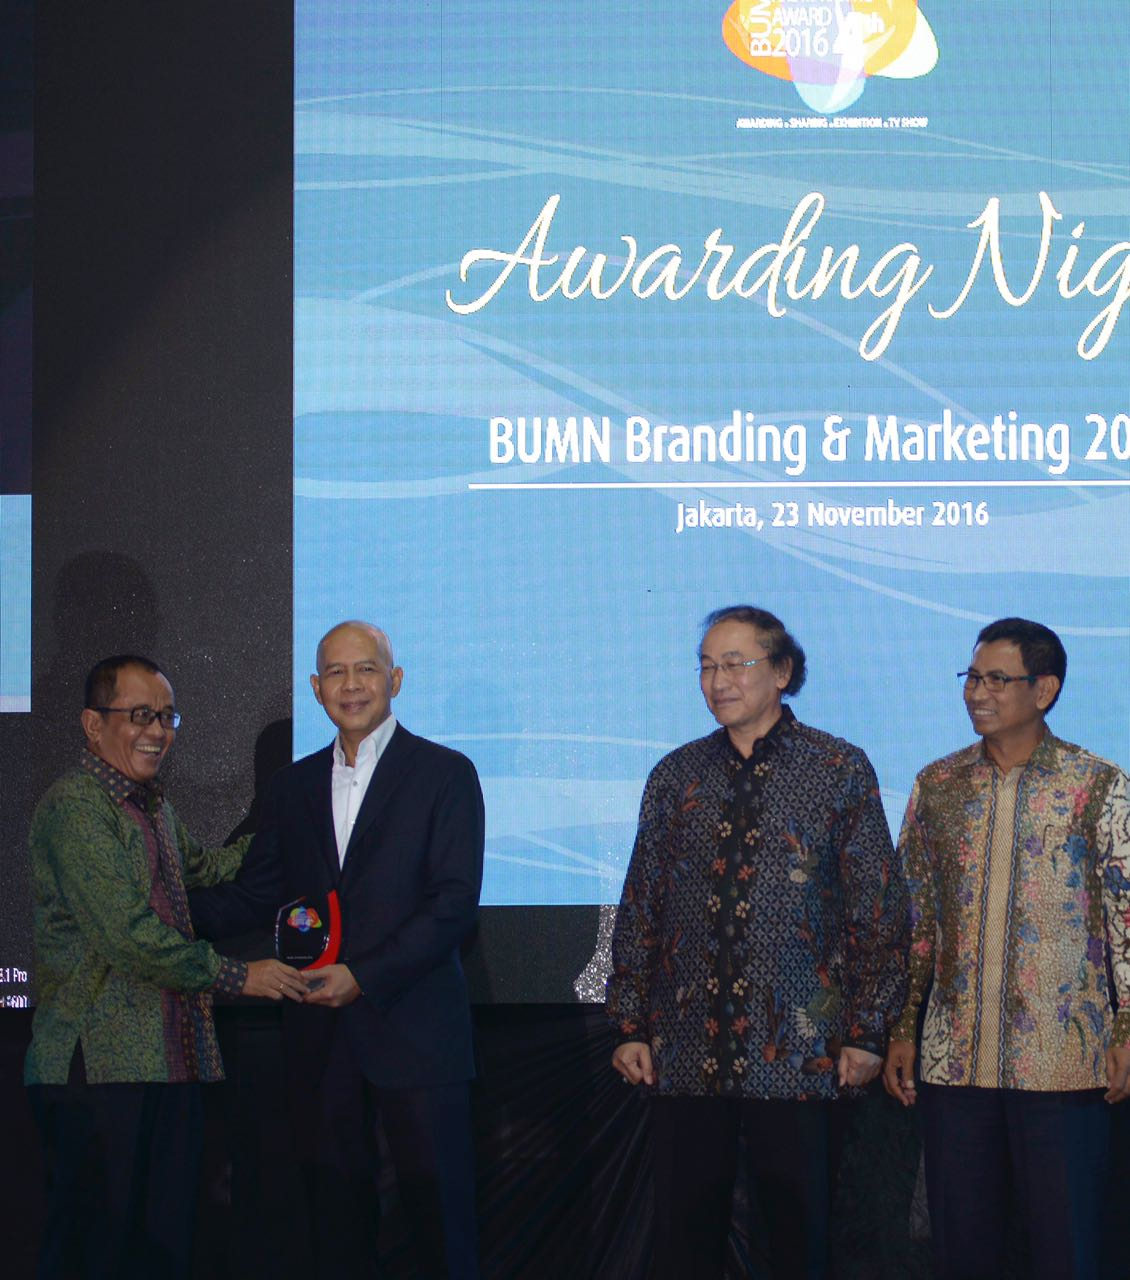 marketing mix garuda indonesia Marketing plan malaysia airlines berhad mab, mas slideshare uses cookies to improve functionality and performance, and to provide you with relevant advertising if you continue browsing the site, you agree to the use of cookies on this website.